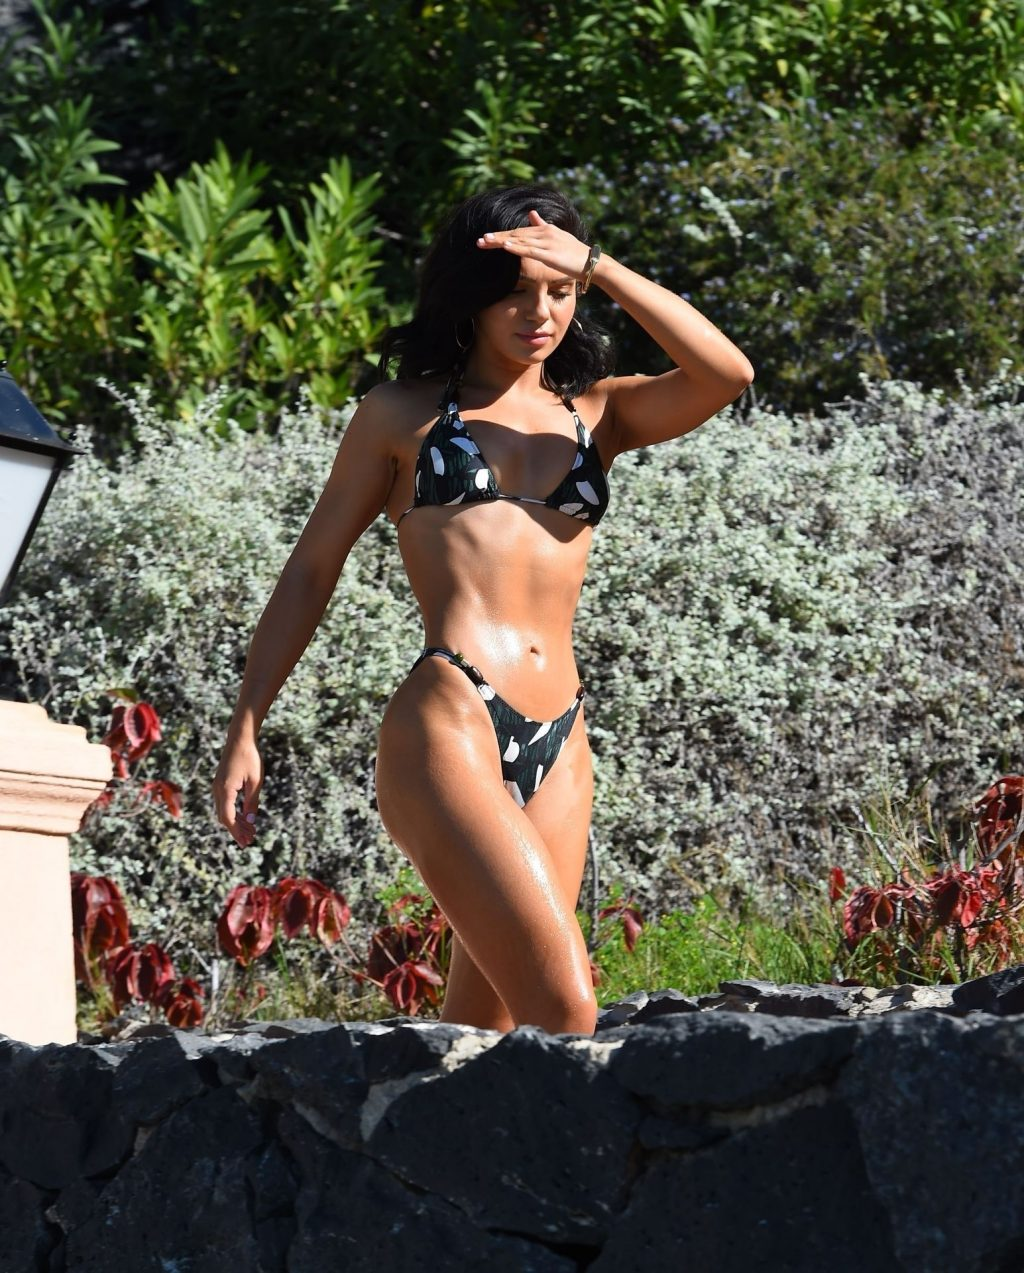 Alexandra Cane Flaunts Her Sexy Physique On Holiday in Los Angeles (16 Photos)